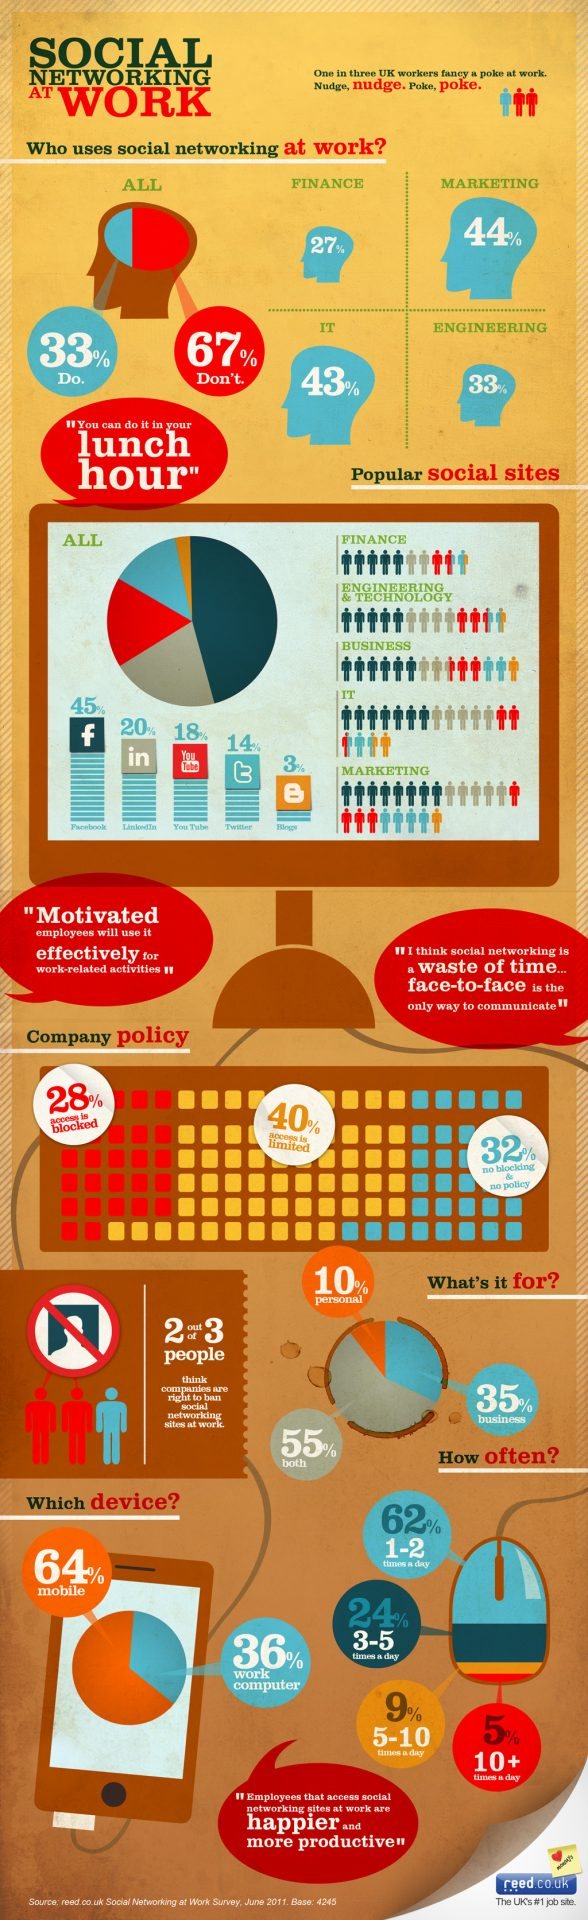 socialNetworkingAtWorkInfographic Employees Like Work More When Social Media Is Allowed [Infographic]